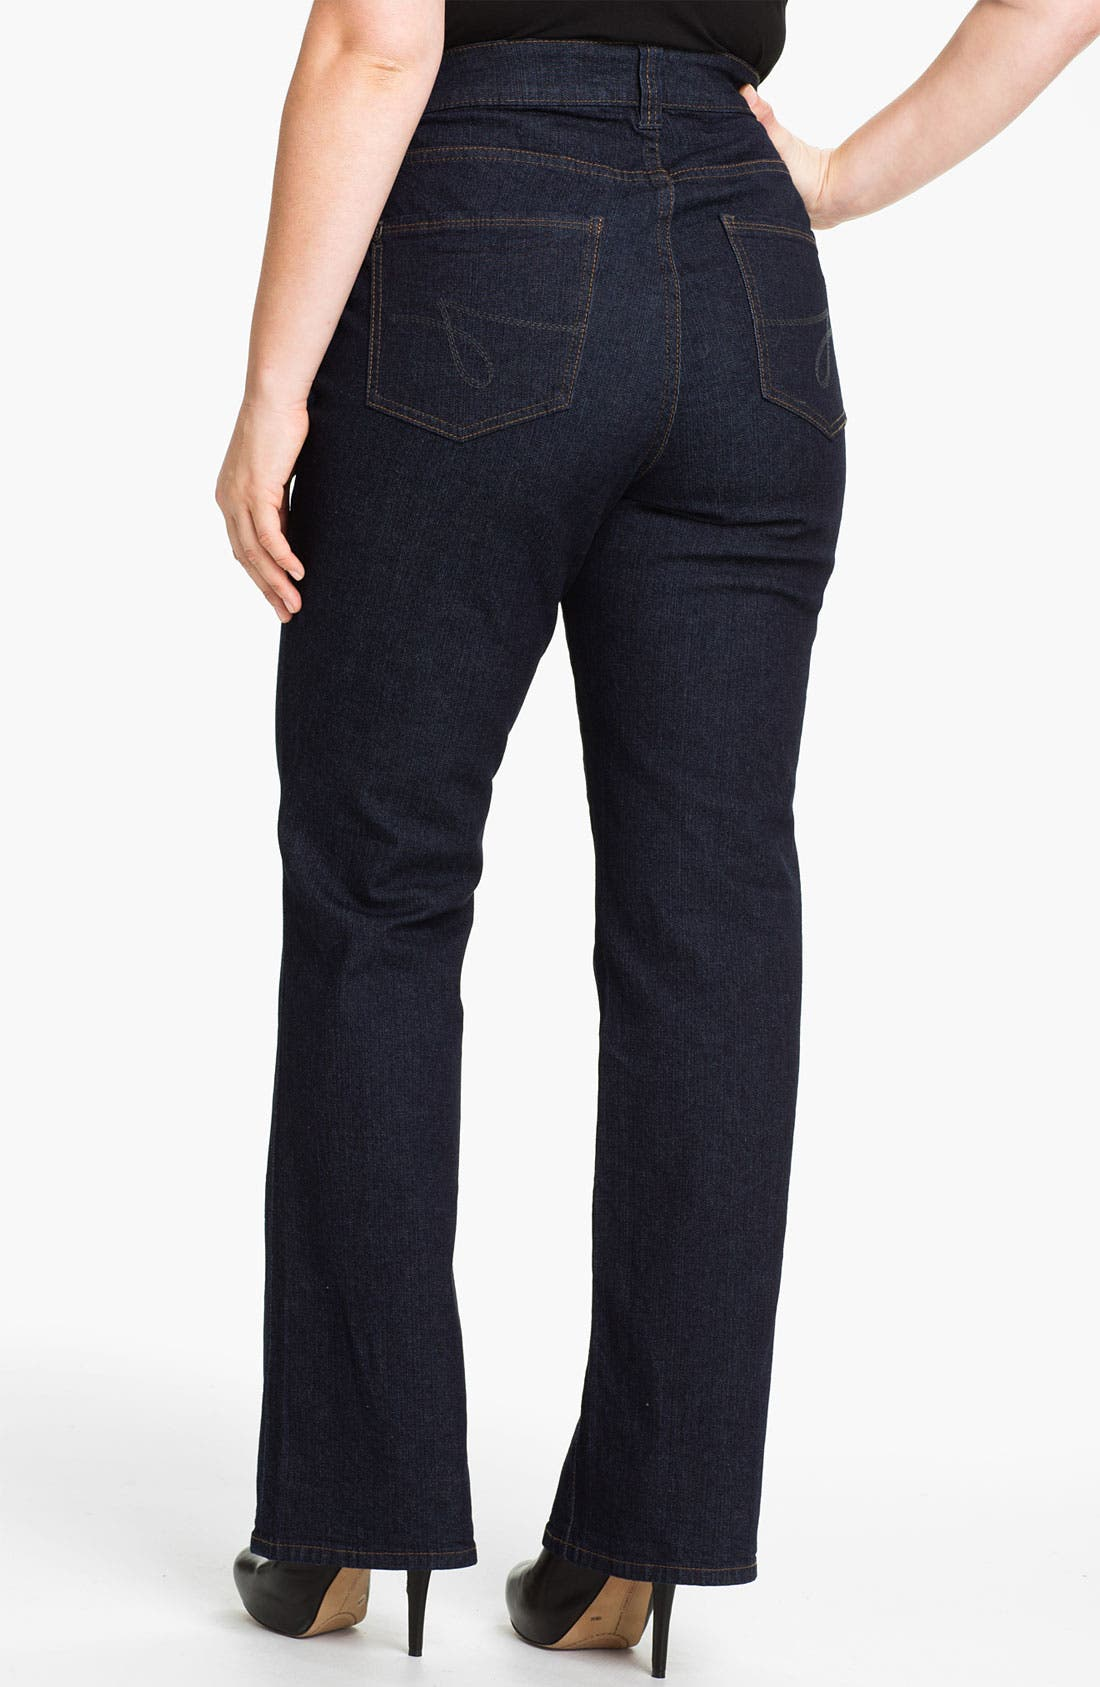 Alternate Image 2  - Jag Jeans 'Foster' Bootcut Jeans (Plus Size)